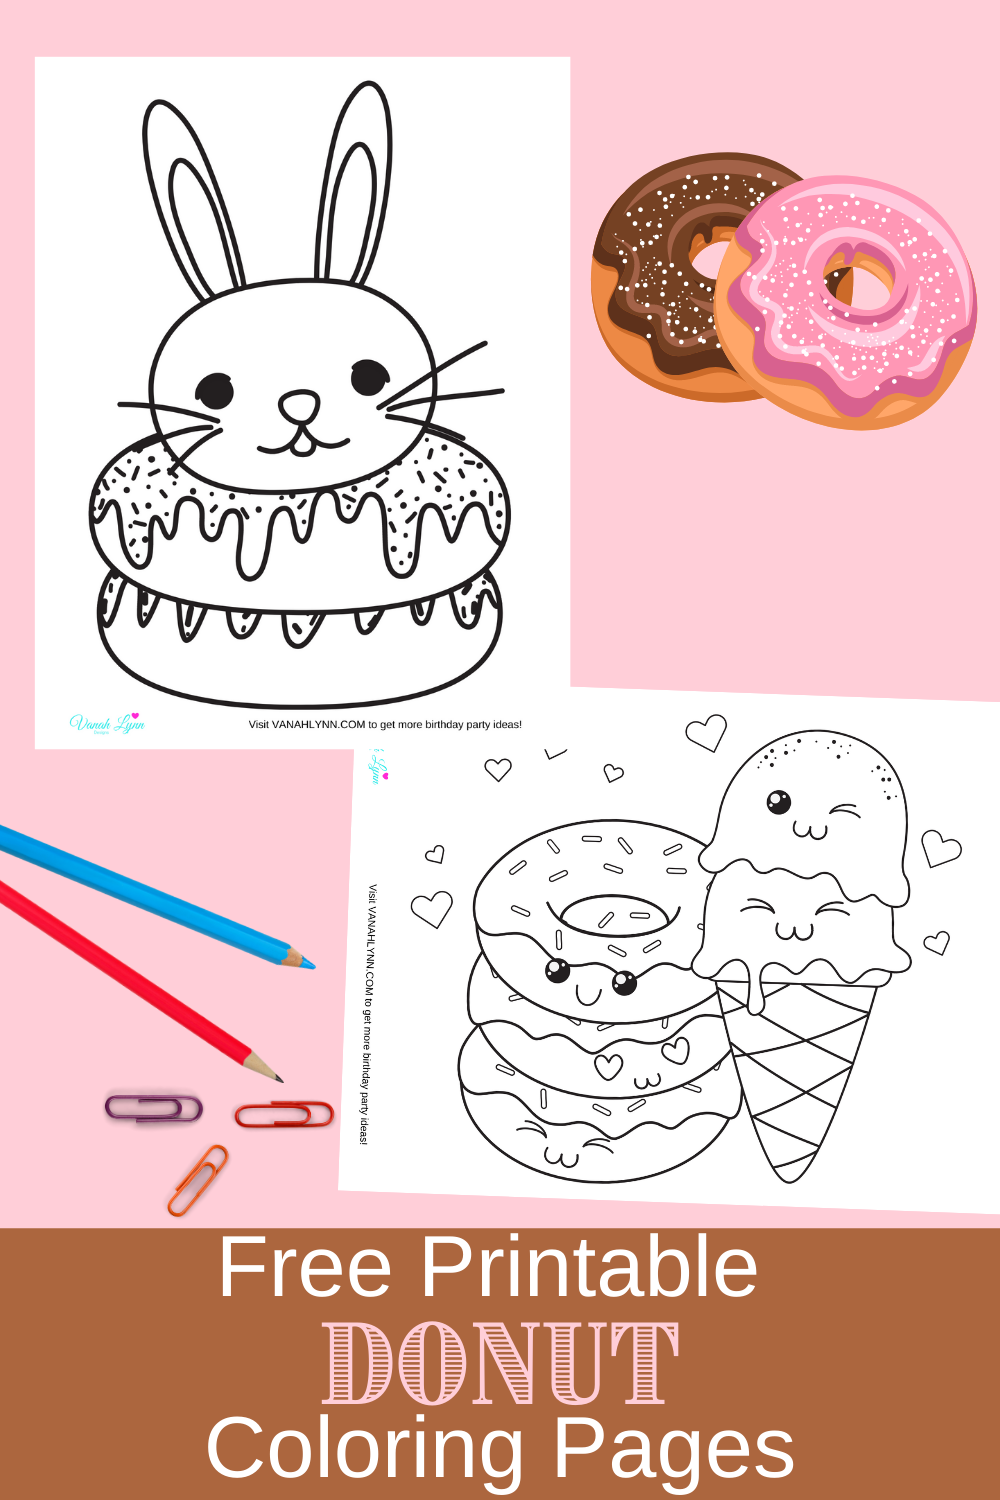 free printable donut coloring pages for a birthday party